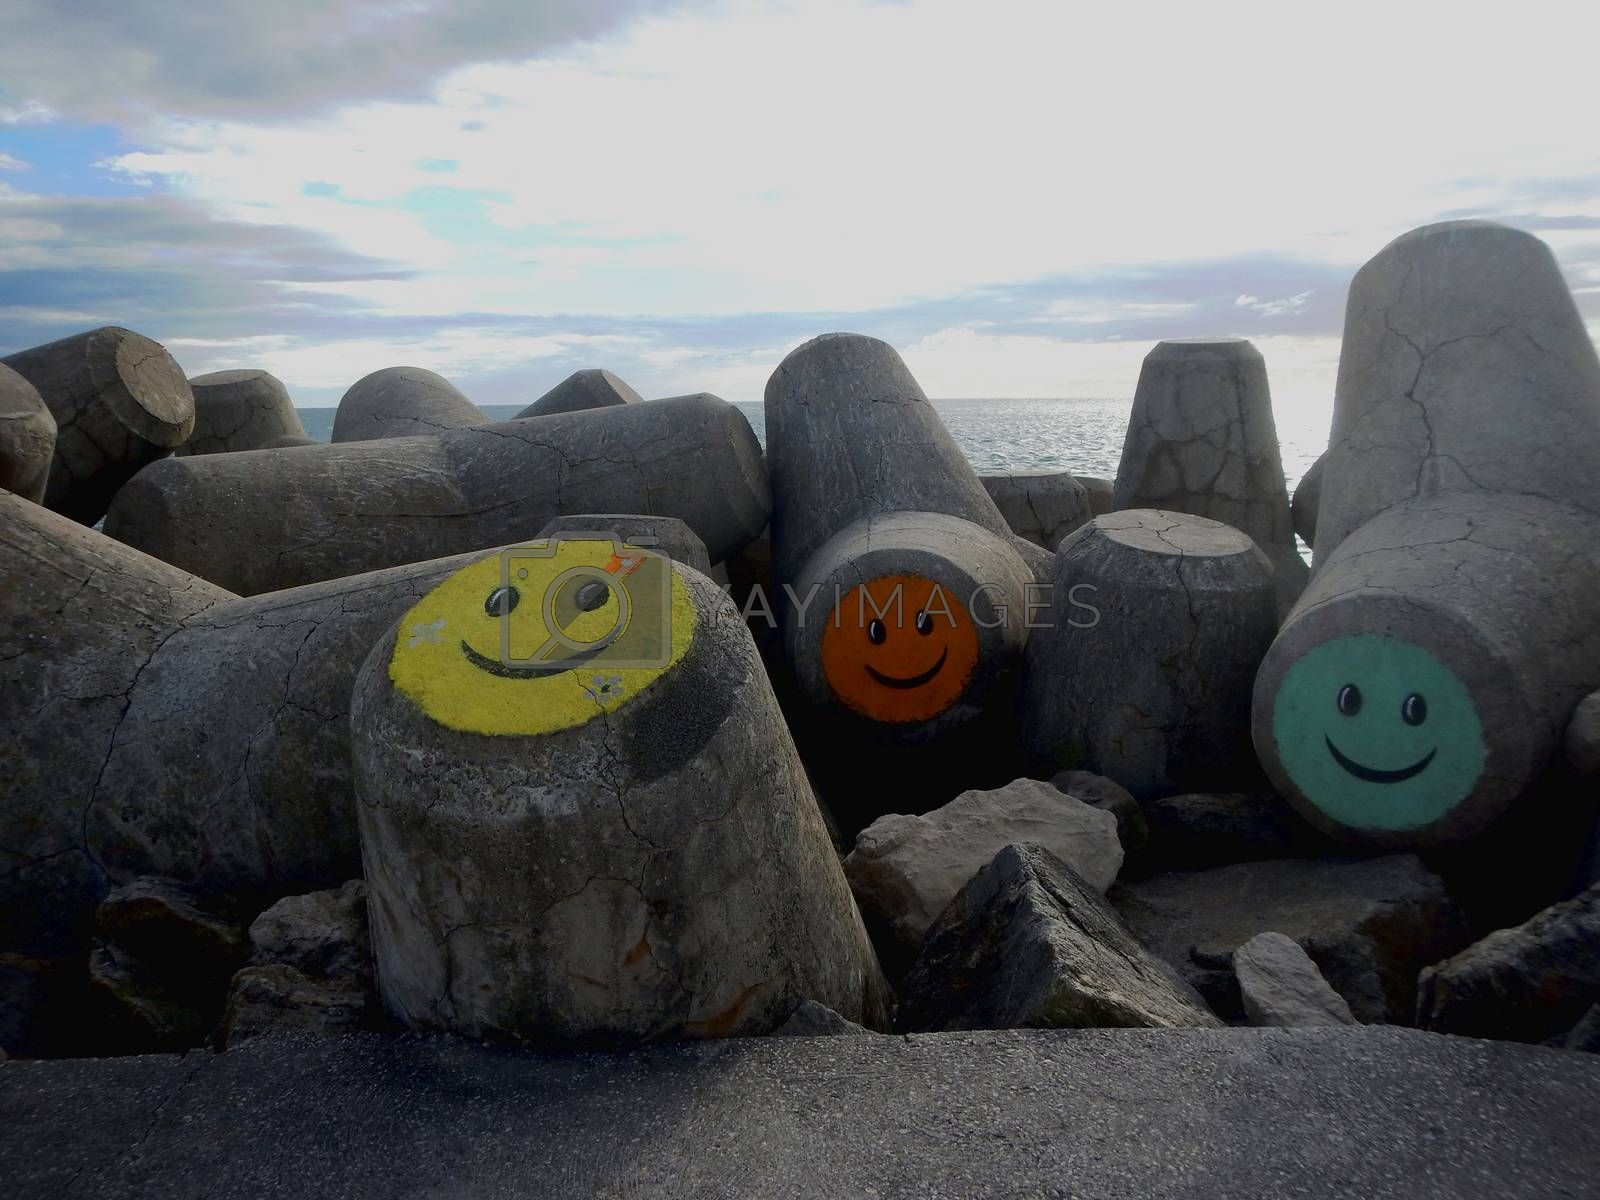 Concrete stones on the beach decorated with colorful faces.